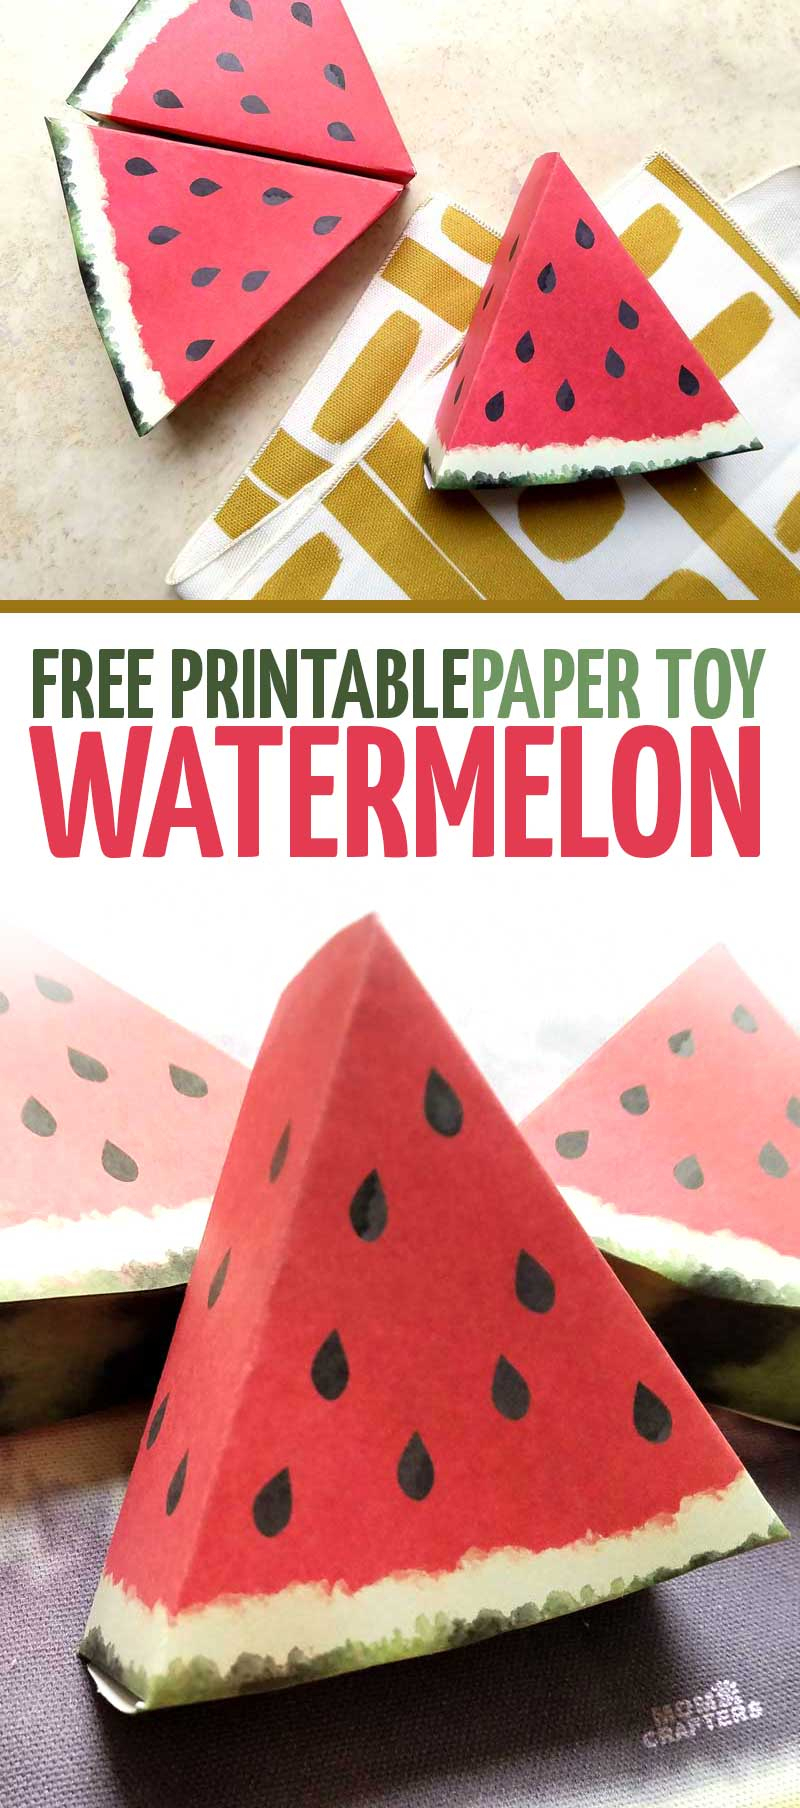 Paper Craft Templates For Play Fruit: Watermelon – Moms And Crafters - Printable Paper Crafts Free